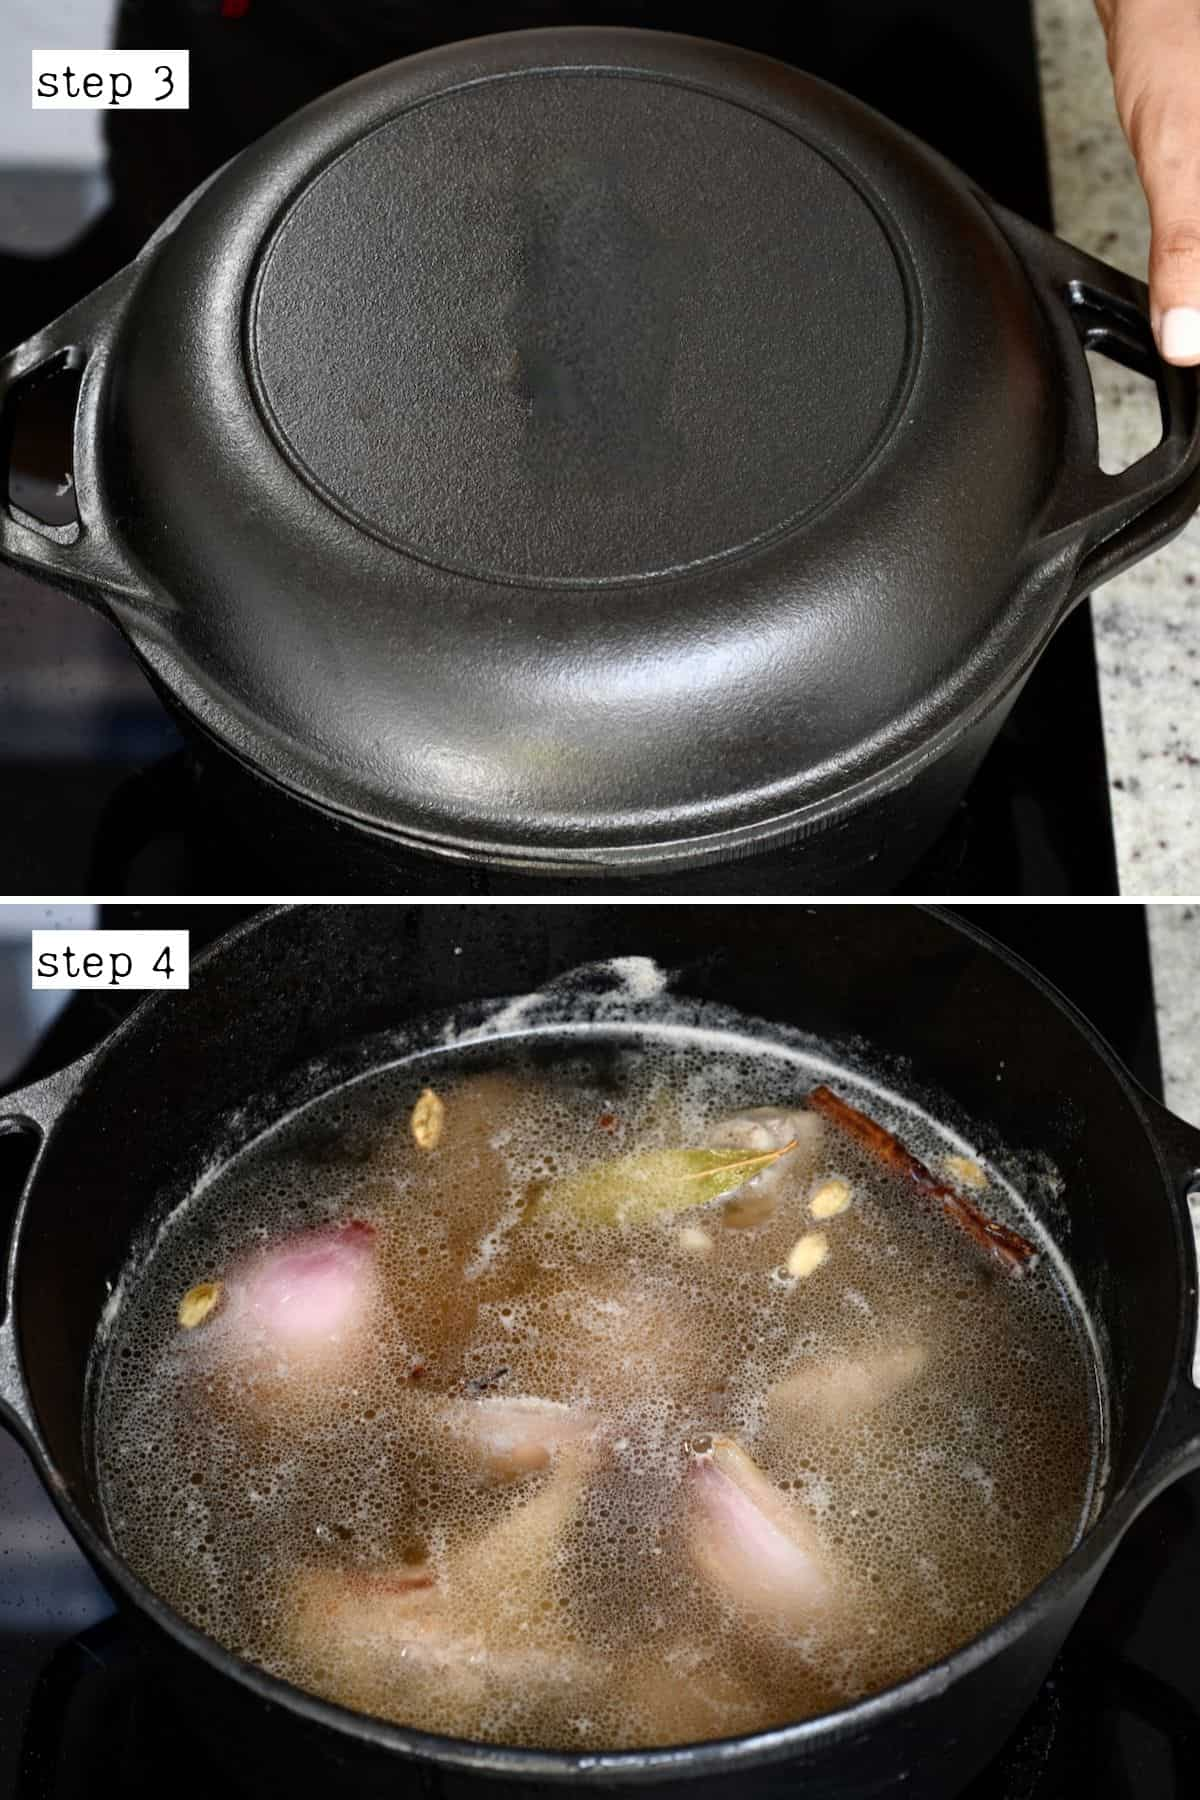 Steps to simmer beef broth